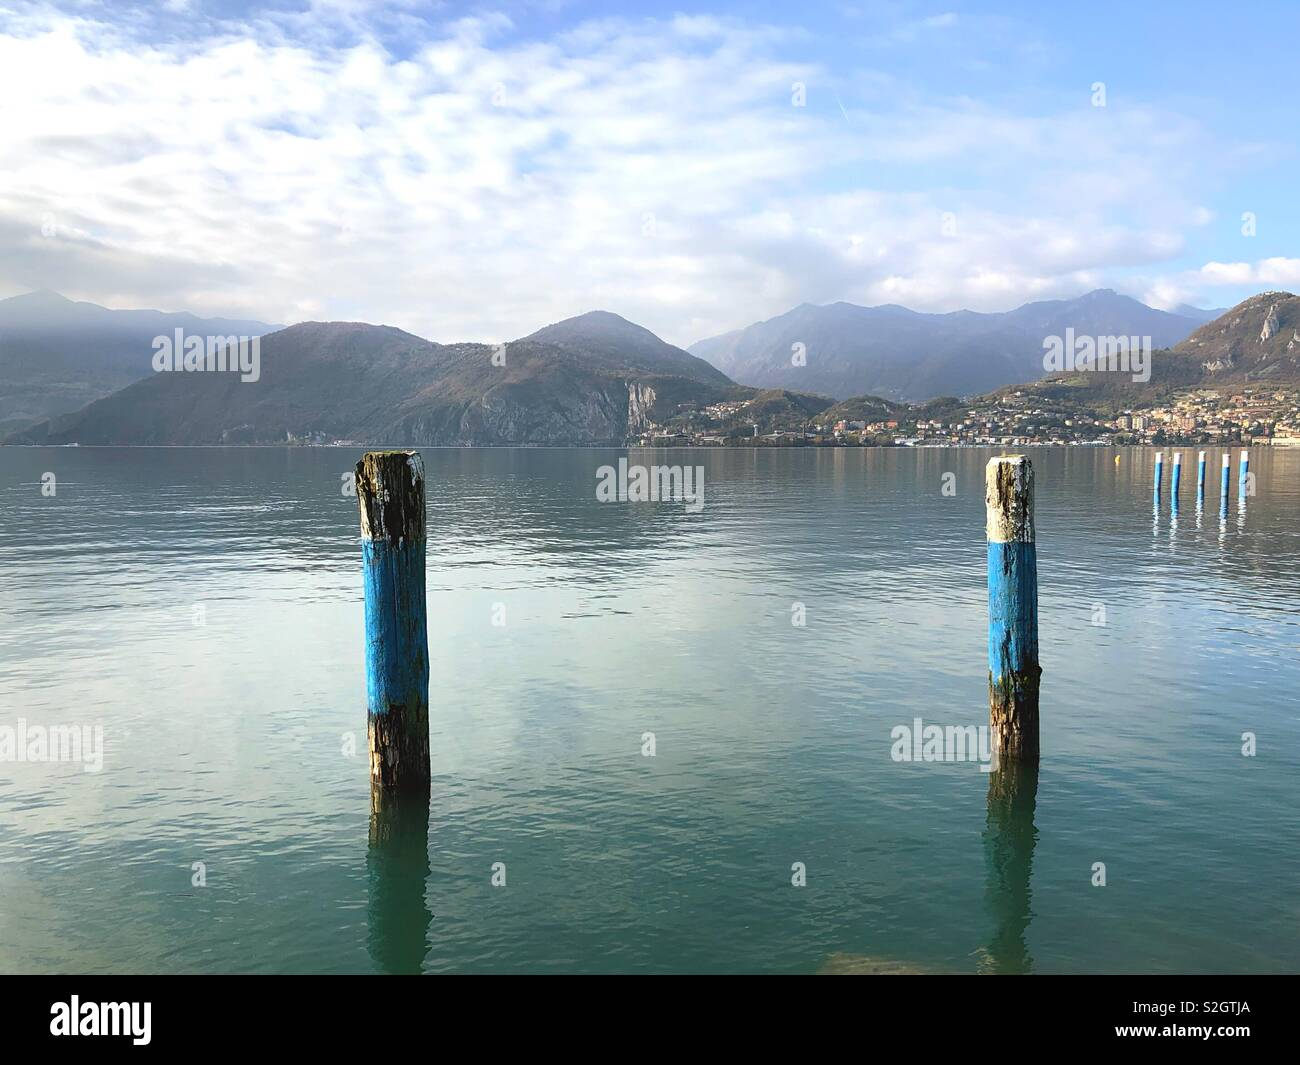 A view of Iseo Lake from Pisogne (Italy) - Stock Image